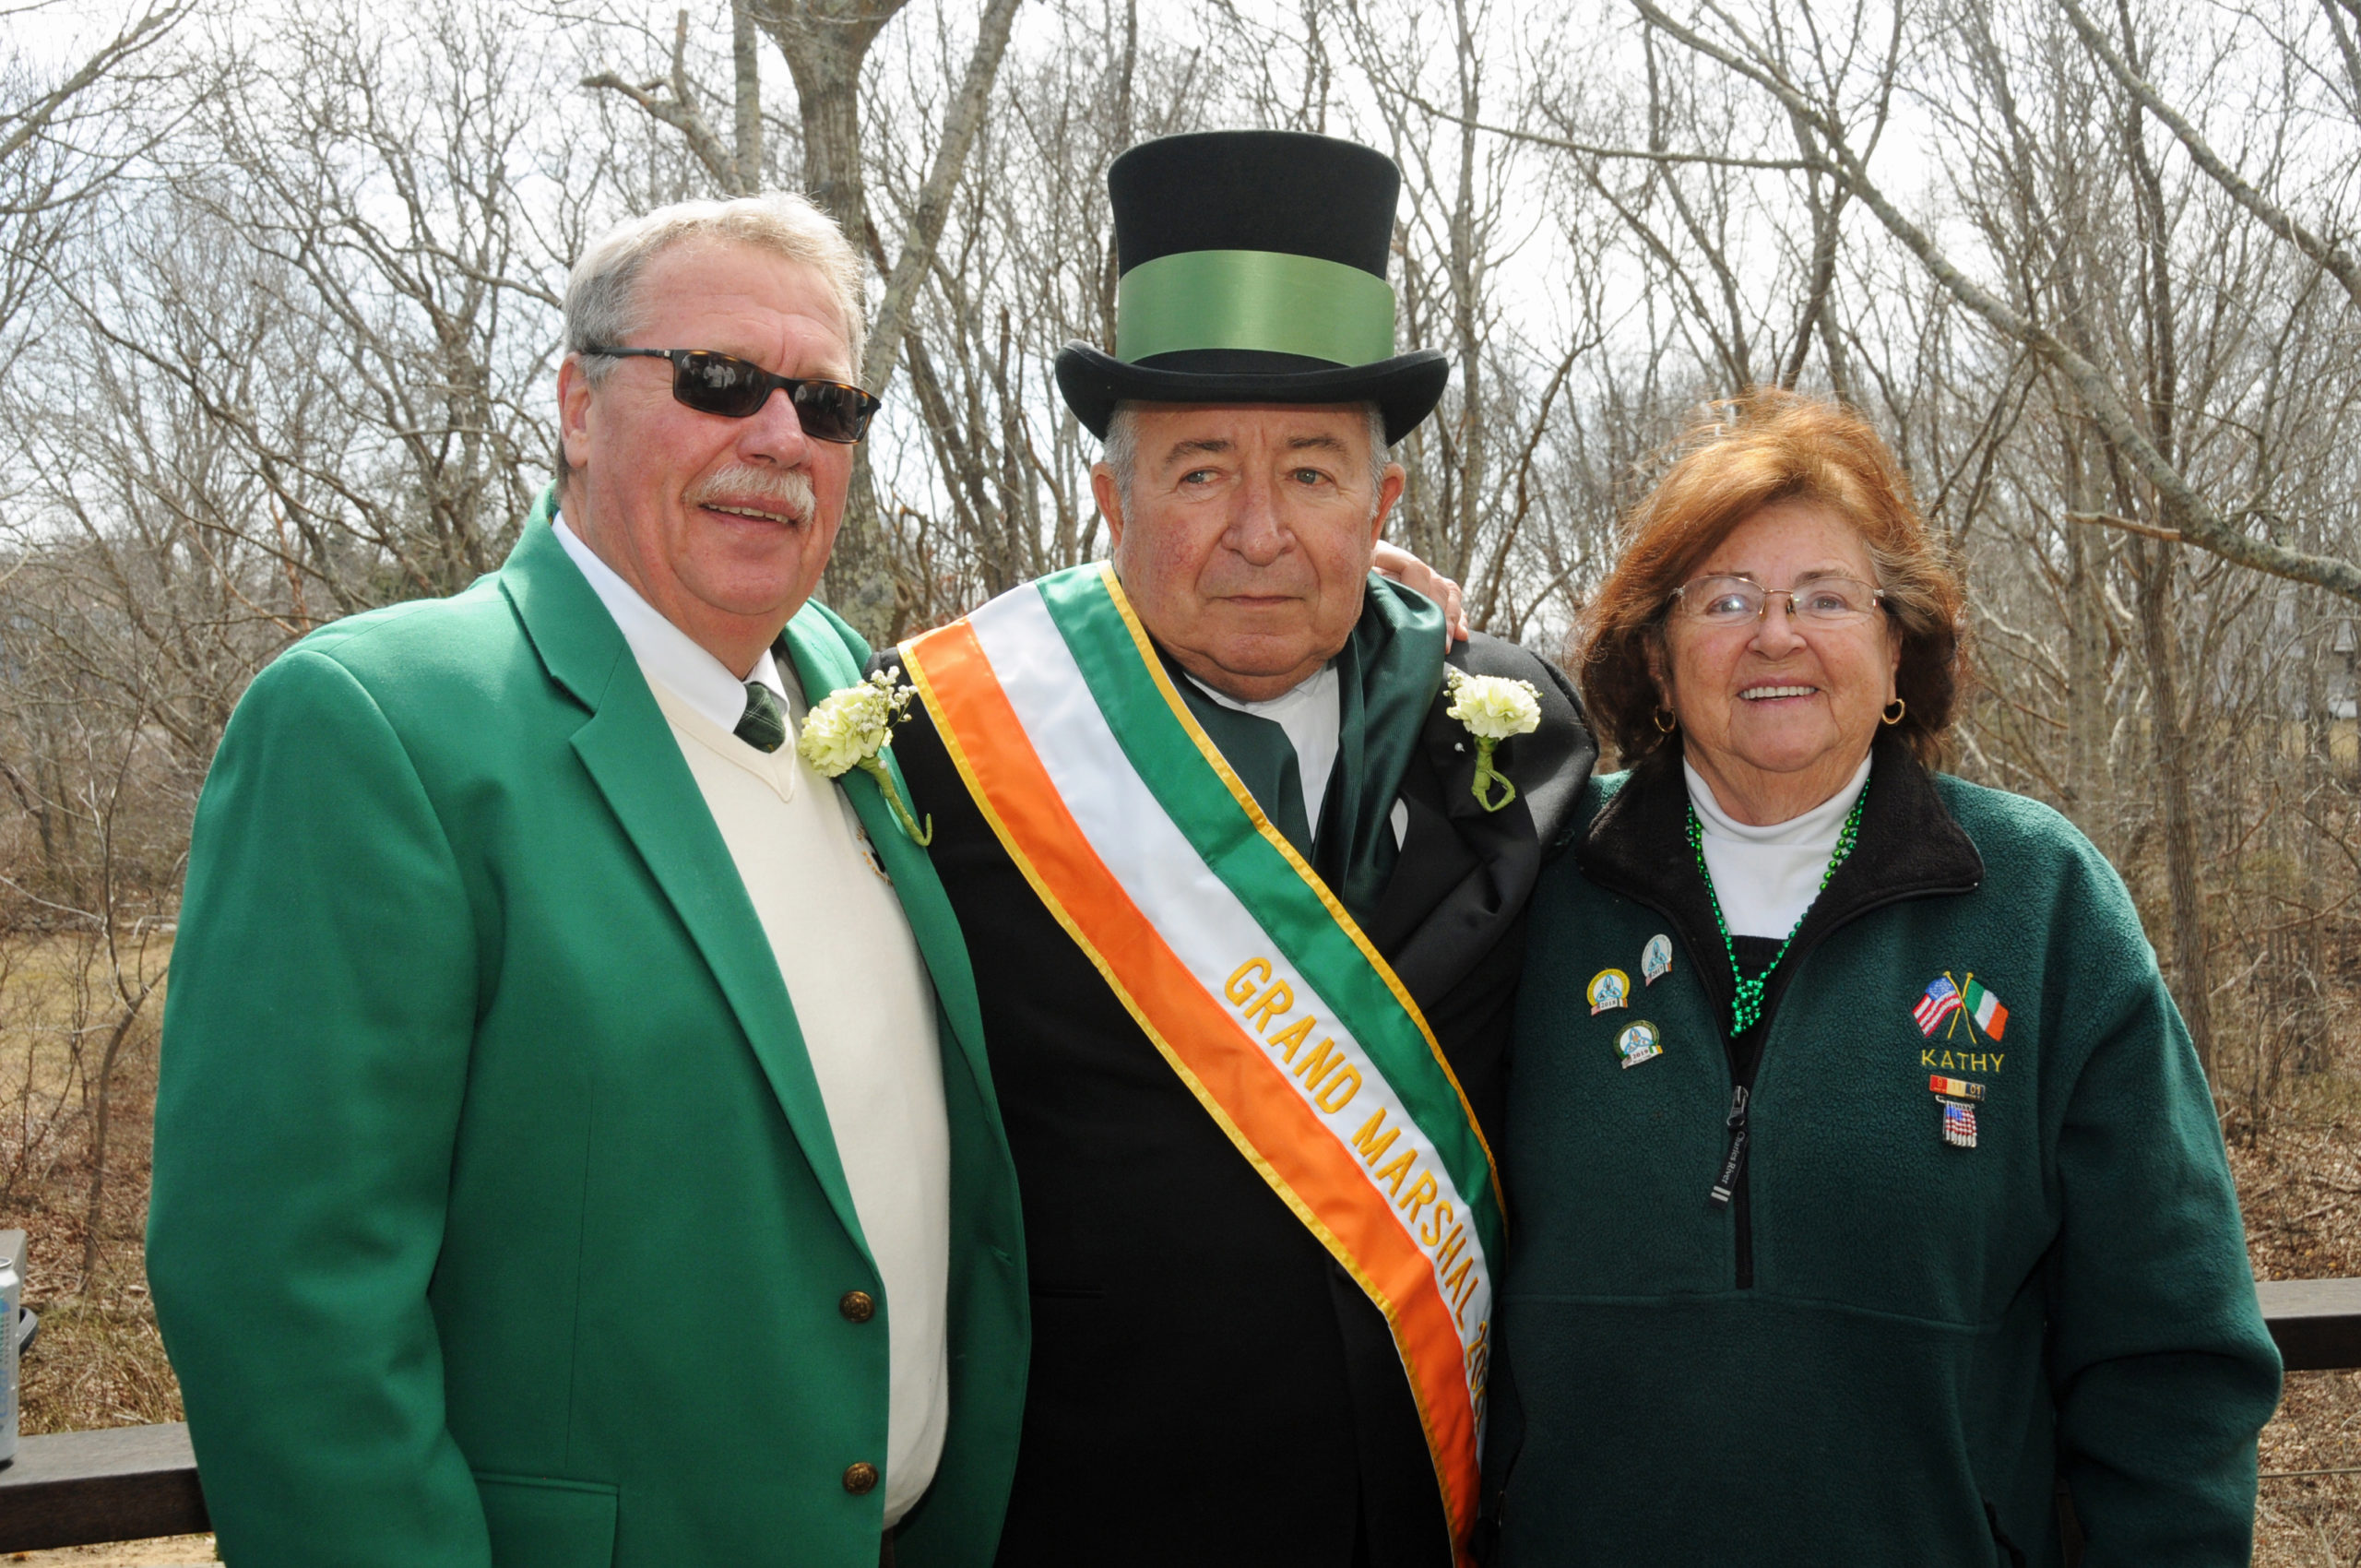 Once again, due to COVID-19, the Montauk Friends of Erin Parade was cancelled, but former parade Grand Marshals Ed Ecker, Jr., Charles Morici, Sr., and Kathy Keller and friends got together for a small gathering on St. Patrick's Day. RICHARD LEWIN